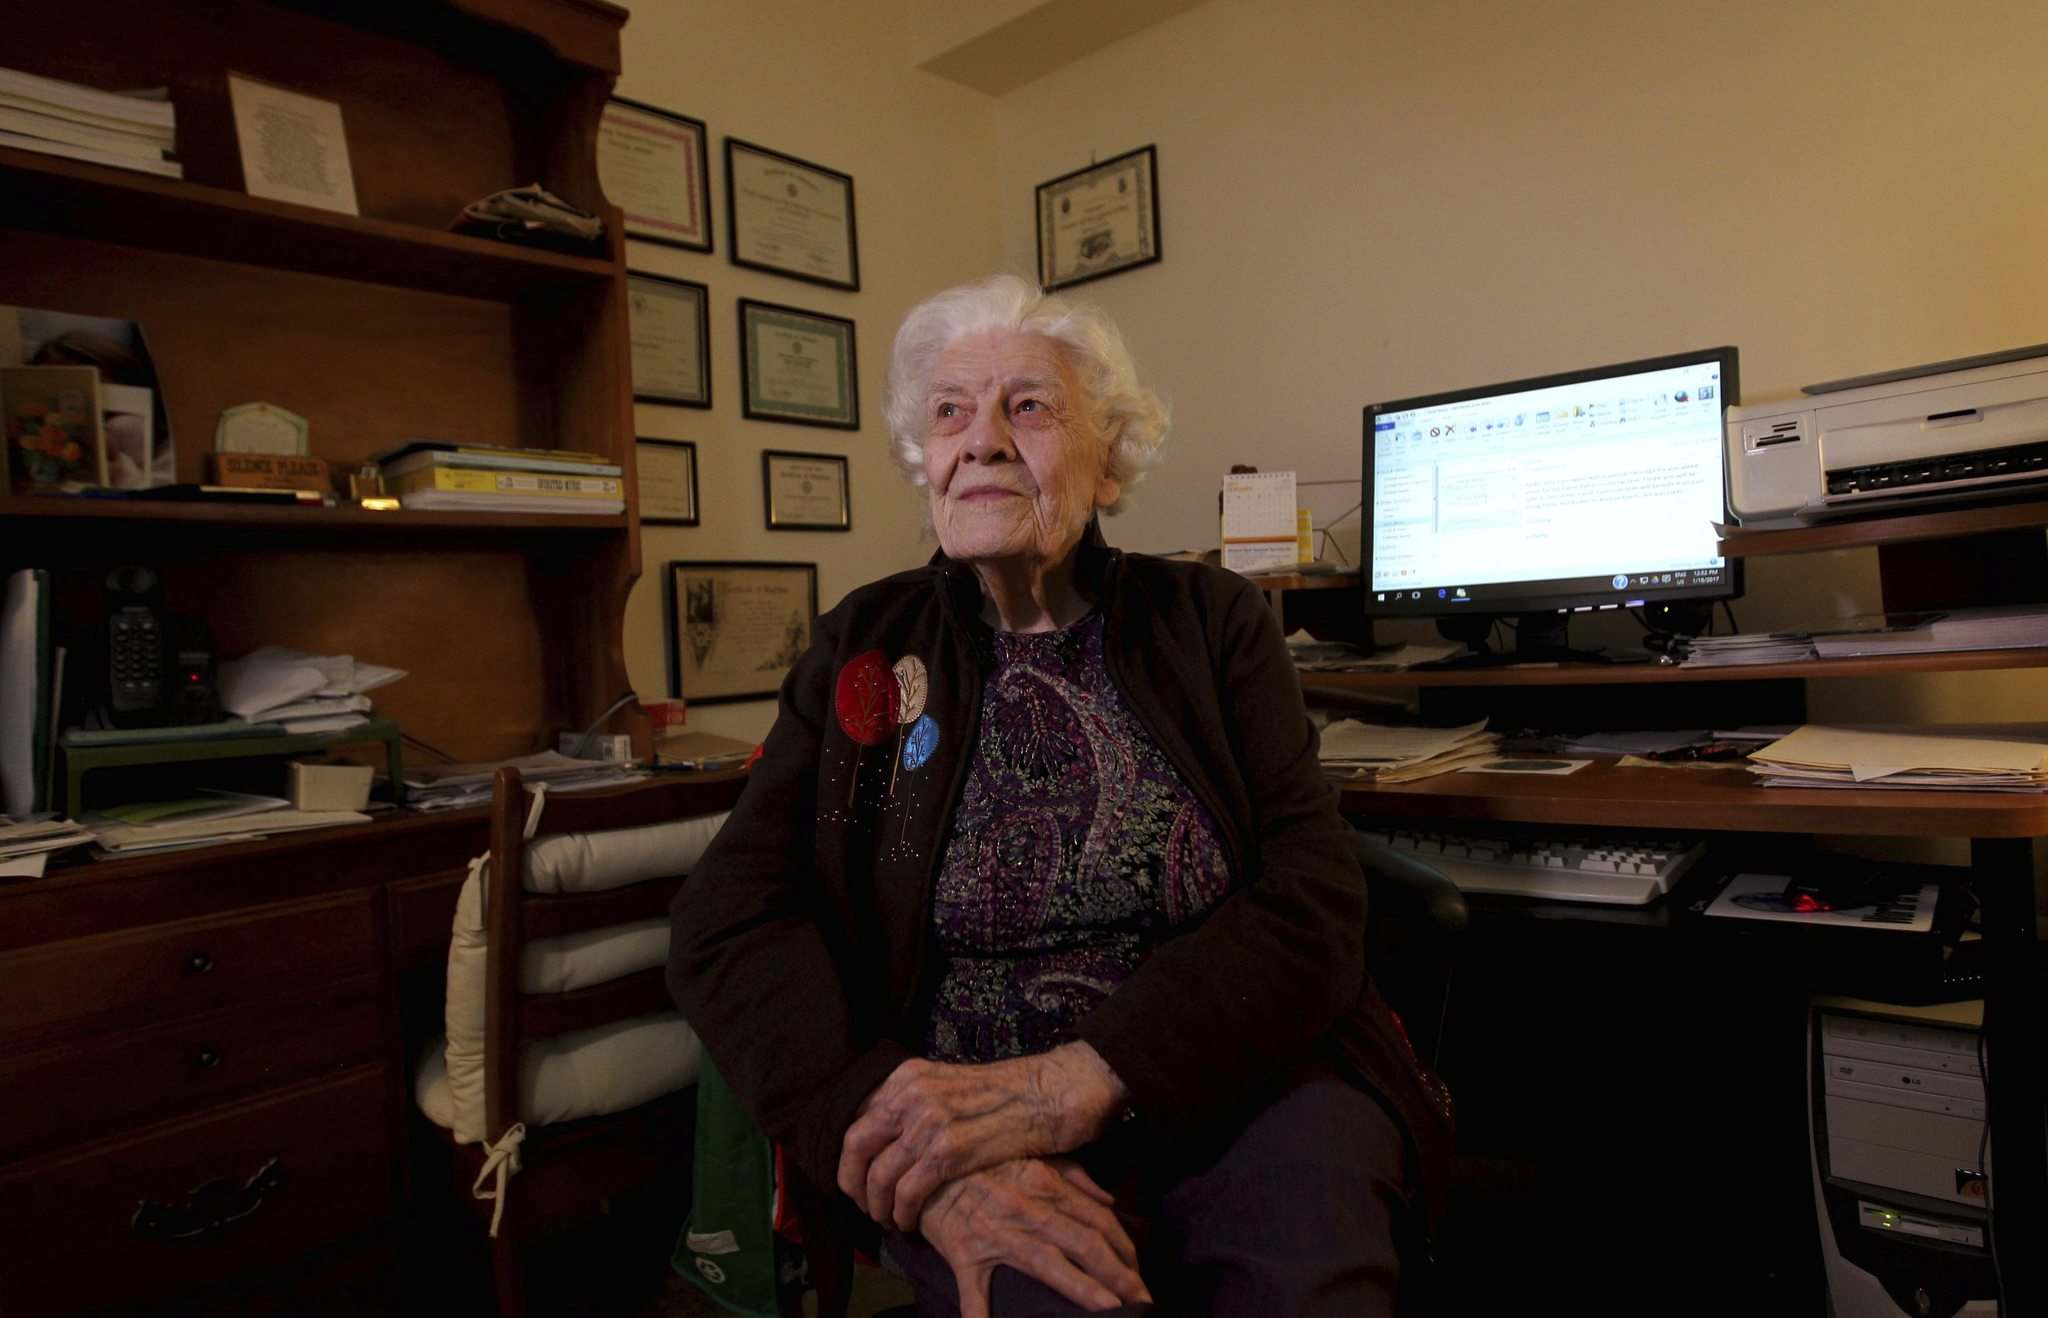 <p>RUTH BONNEVILLE / WINNIPEG FREE PRESS</p><p>Dryden is still teaching today, taking a bus three times a week to the Creative Retirement centre where she teaches computer classes to seniors.</p>